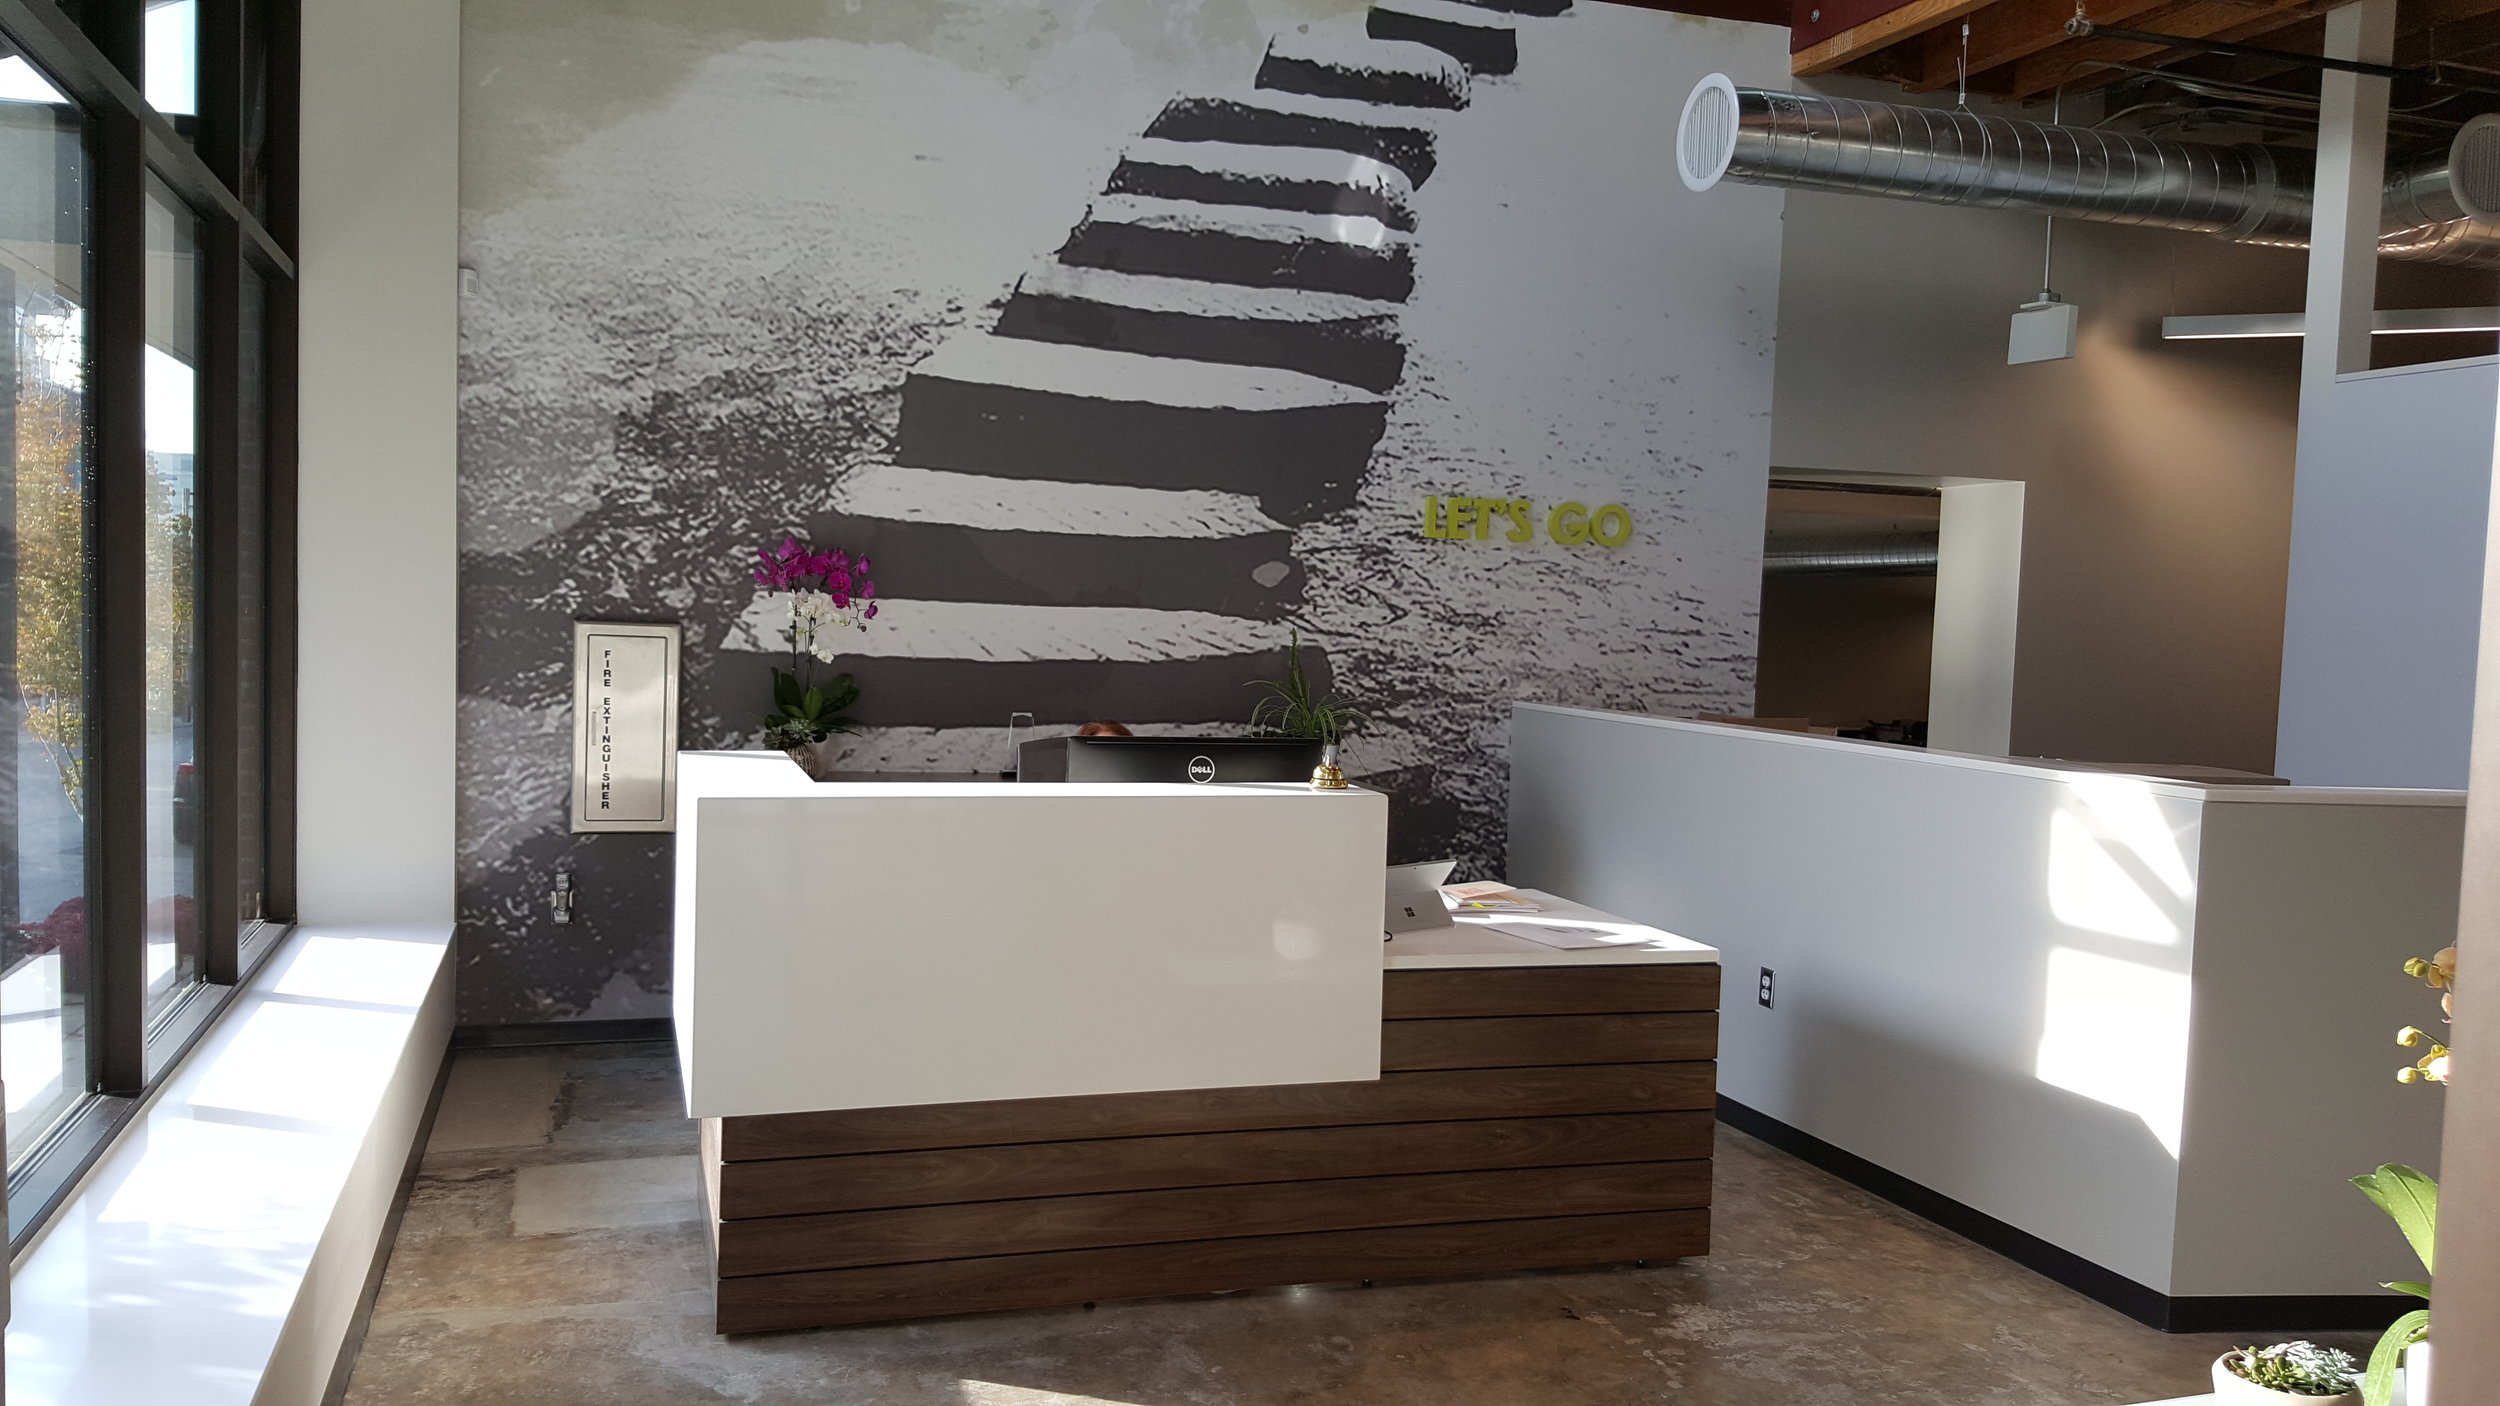 See more photos of ACI Boland's new Crossroads home in the gallery below.